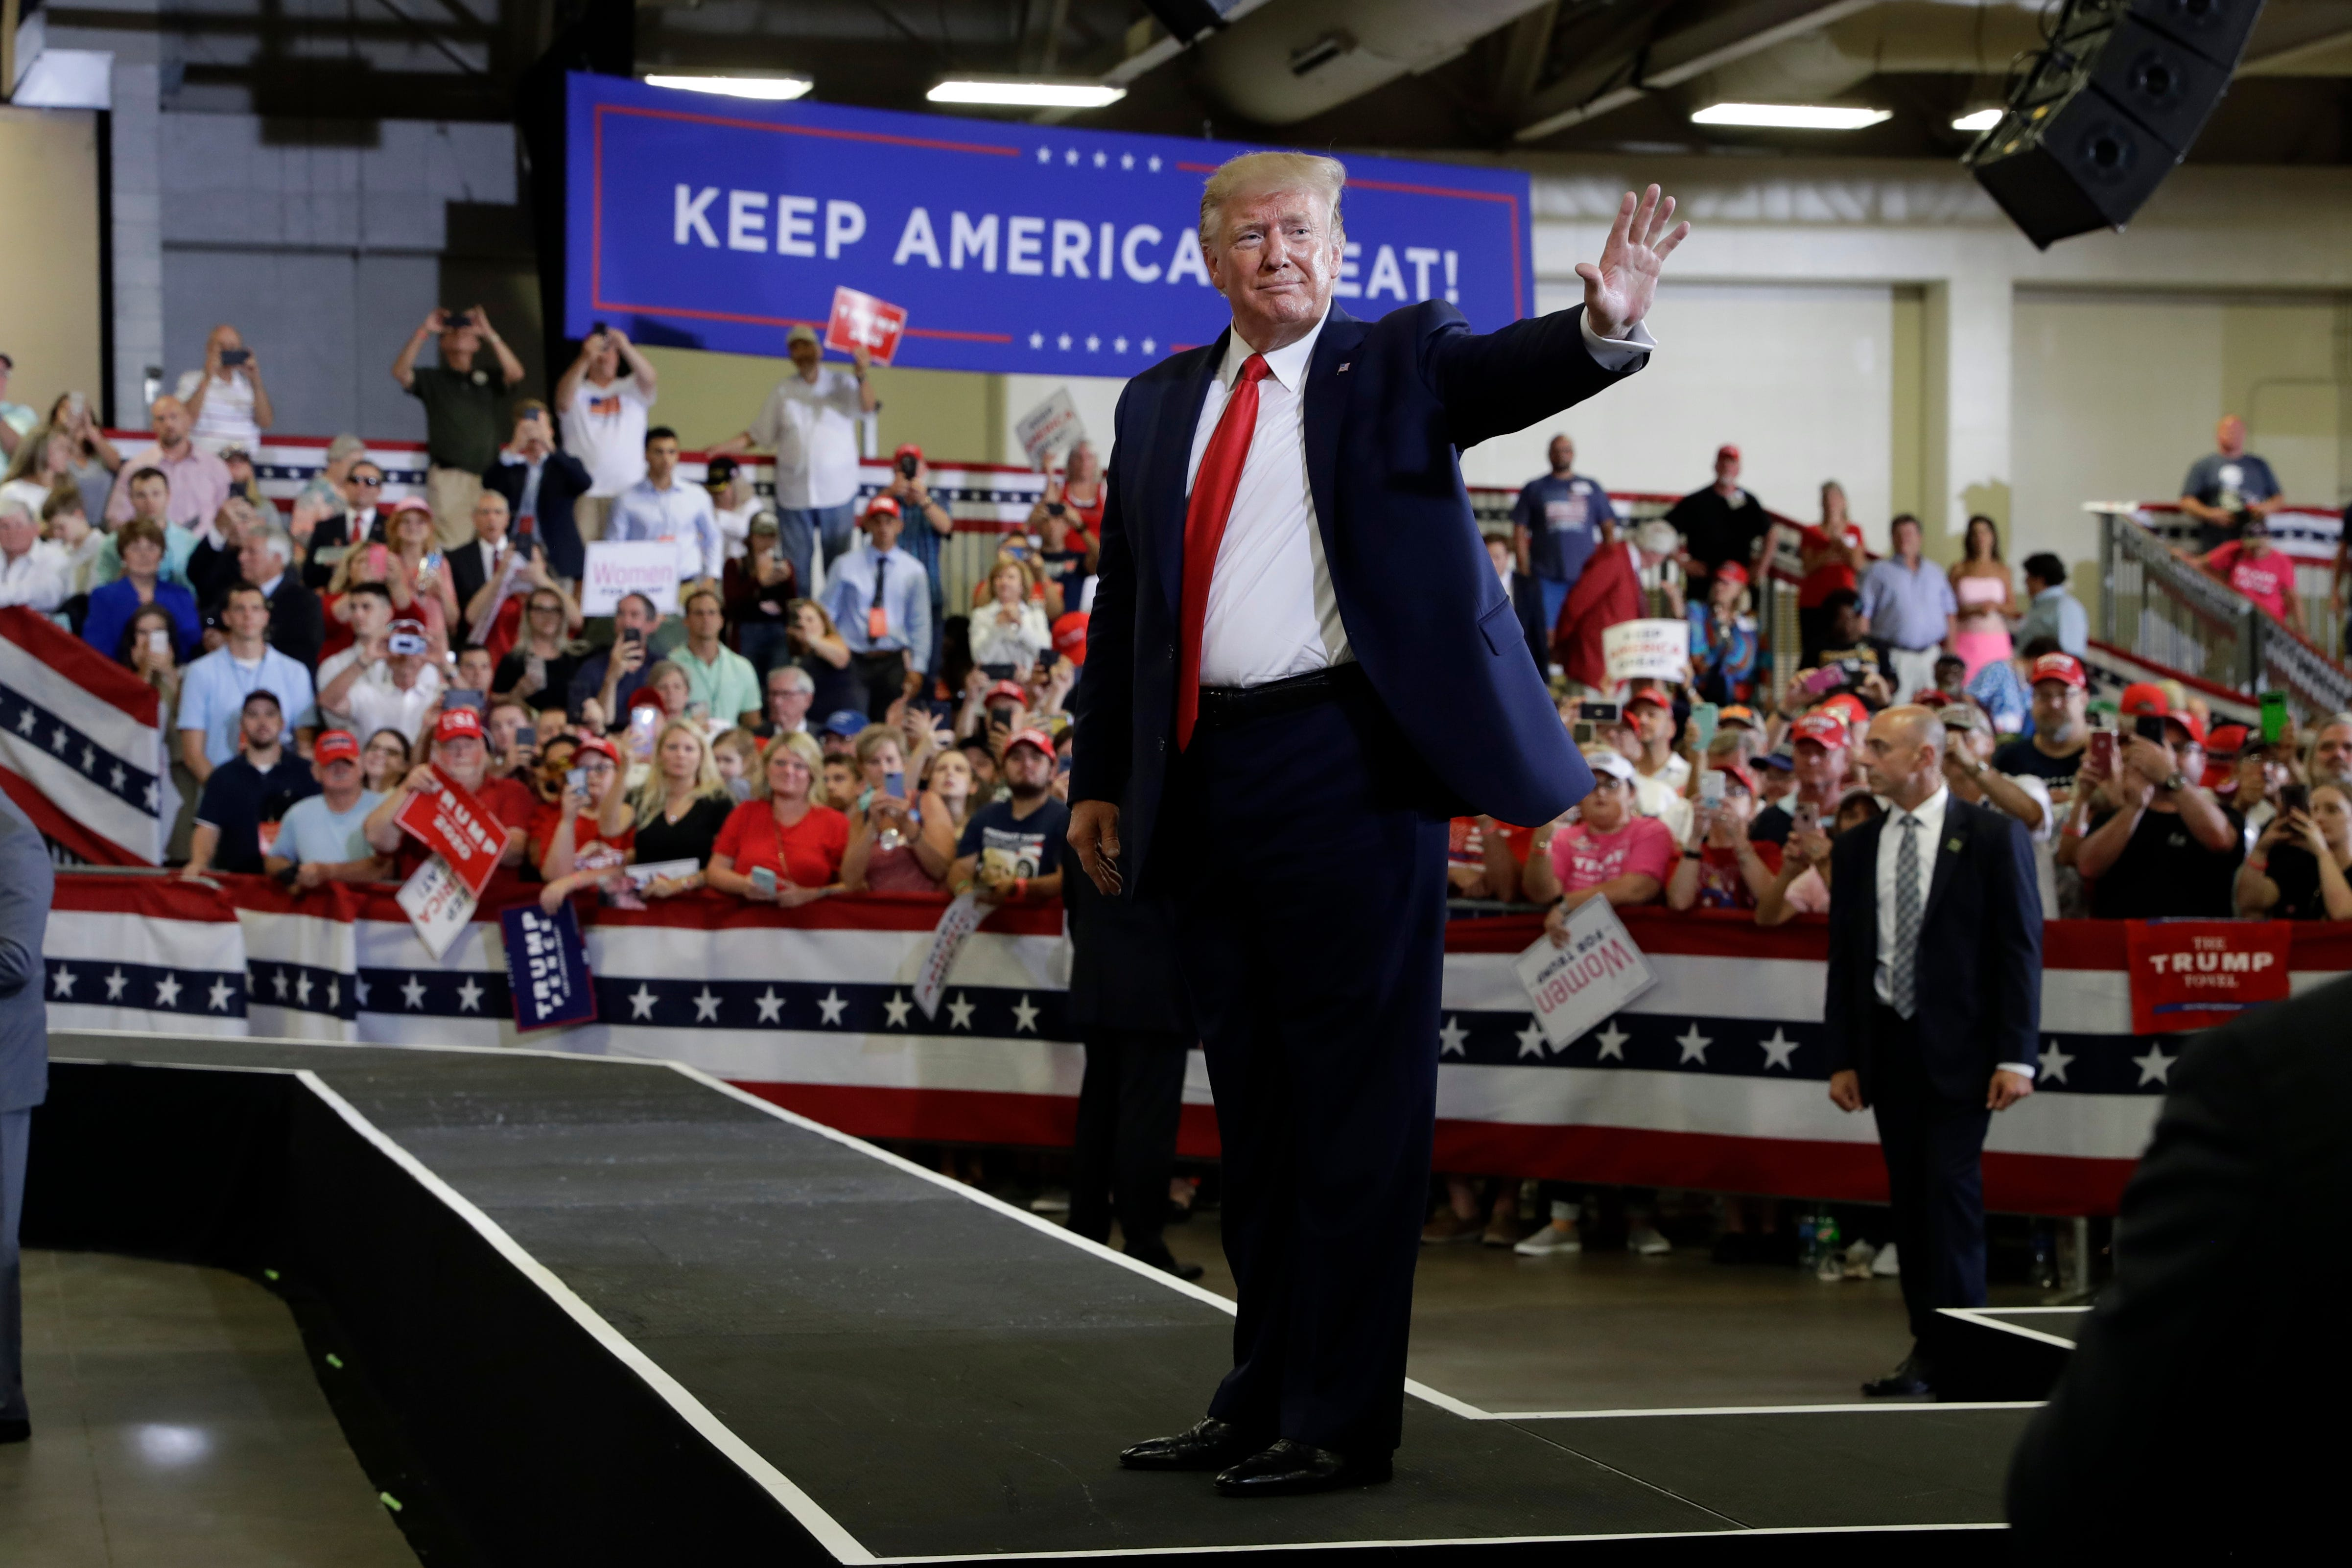 Trump says N.C. rally attendees were 'soaking wet' waiting in line, but it wasn't raining in Fayetteville